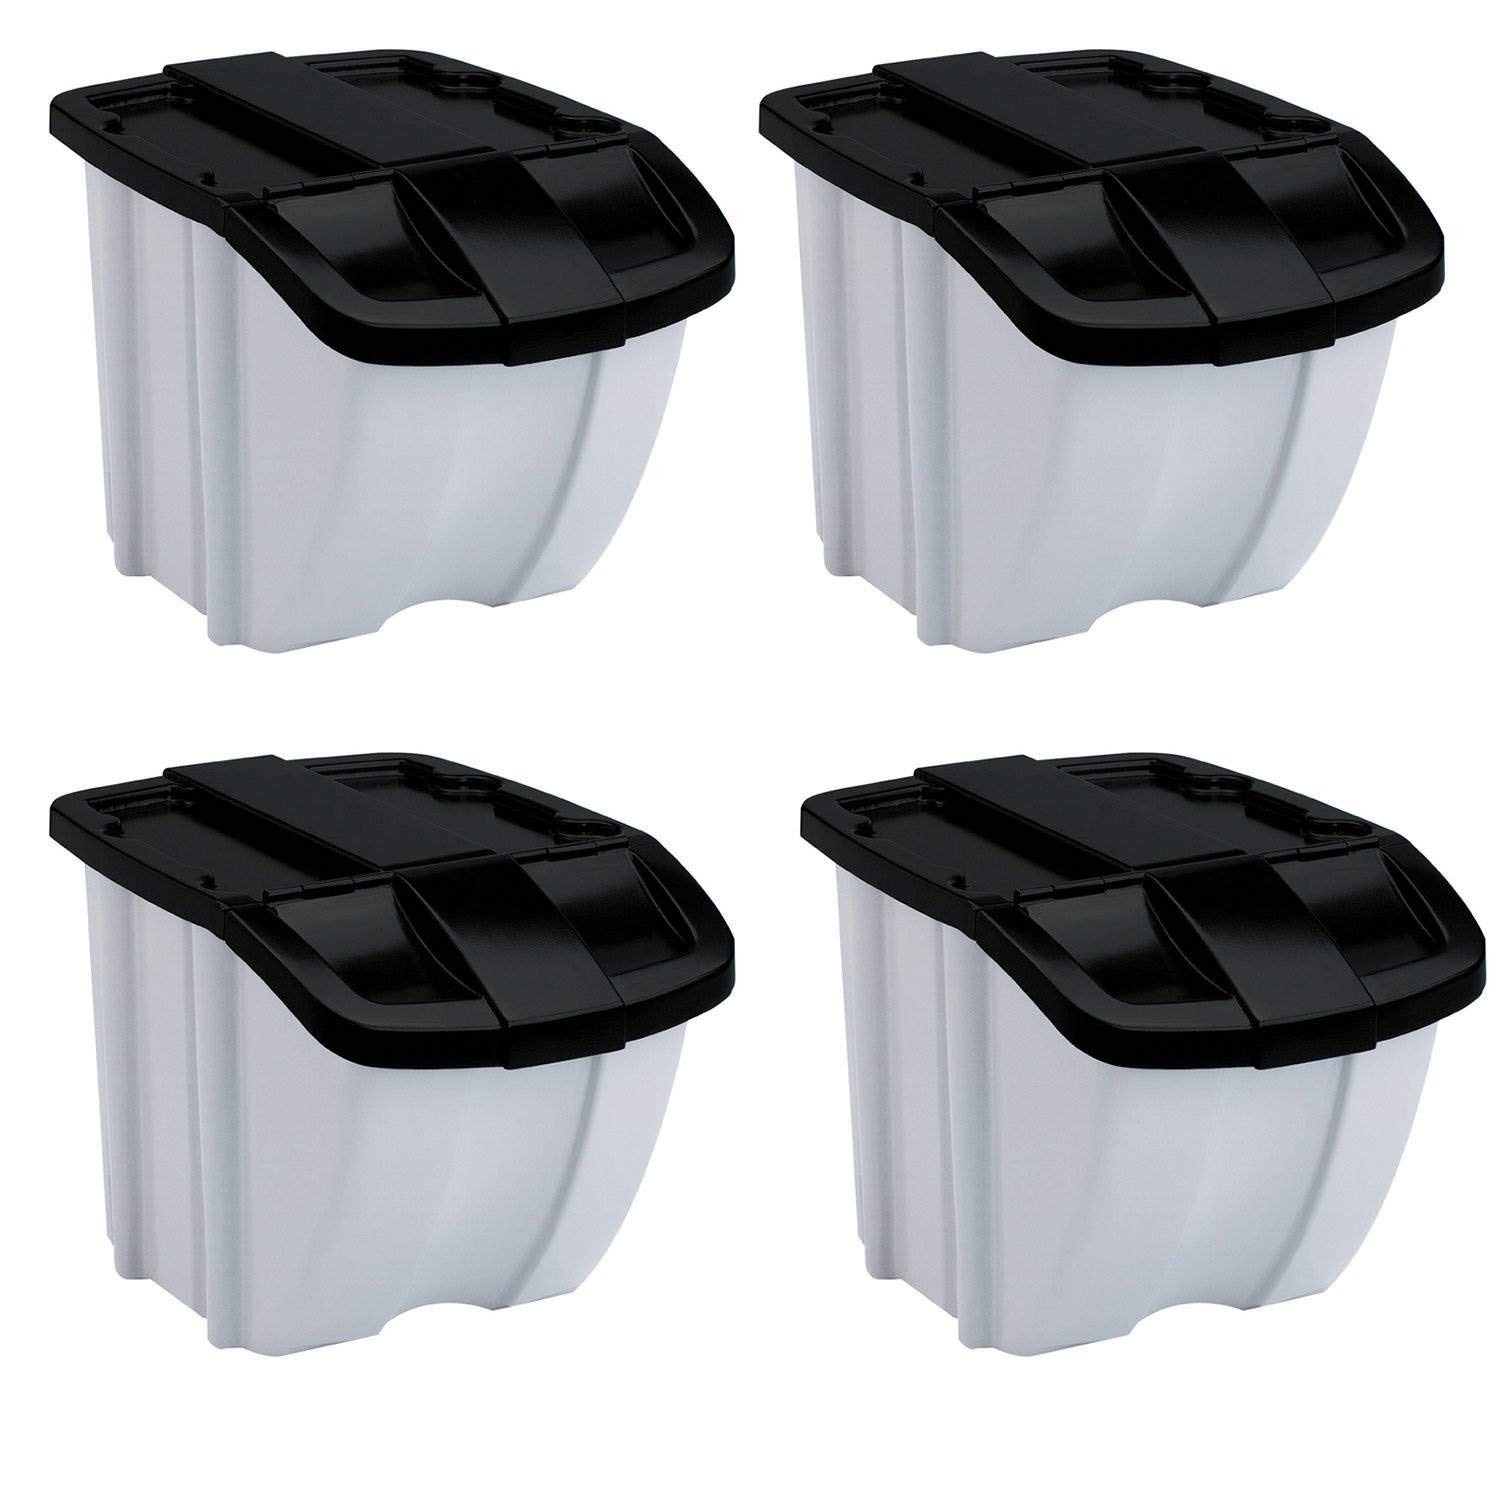 Suncast 18 Gallon Indoor or Outdoor Stacking Recycle Storage Bin, Gray (4 Pack)